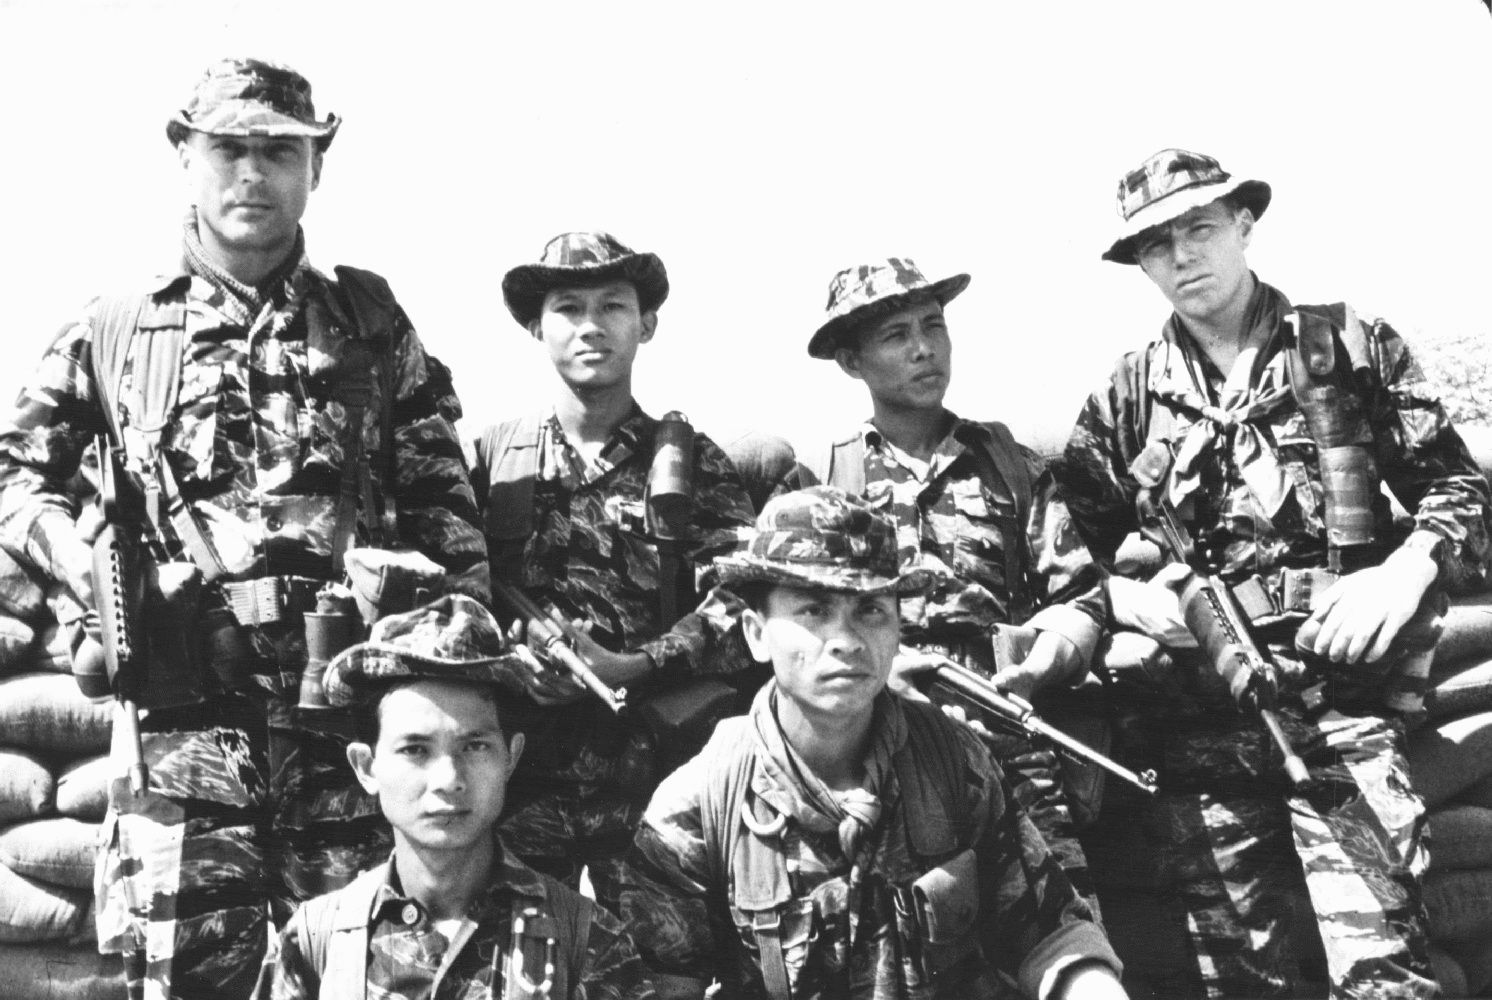 \u200bU.S. Special Forces soldiers and South Vietnamese troops in September 1968.